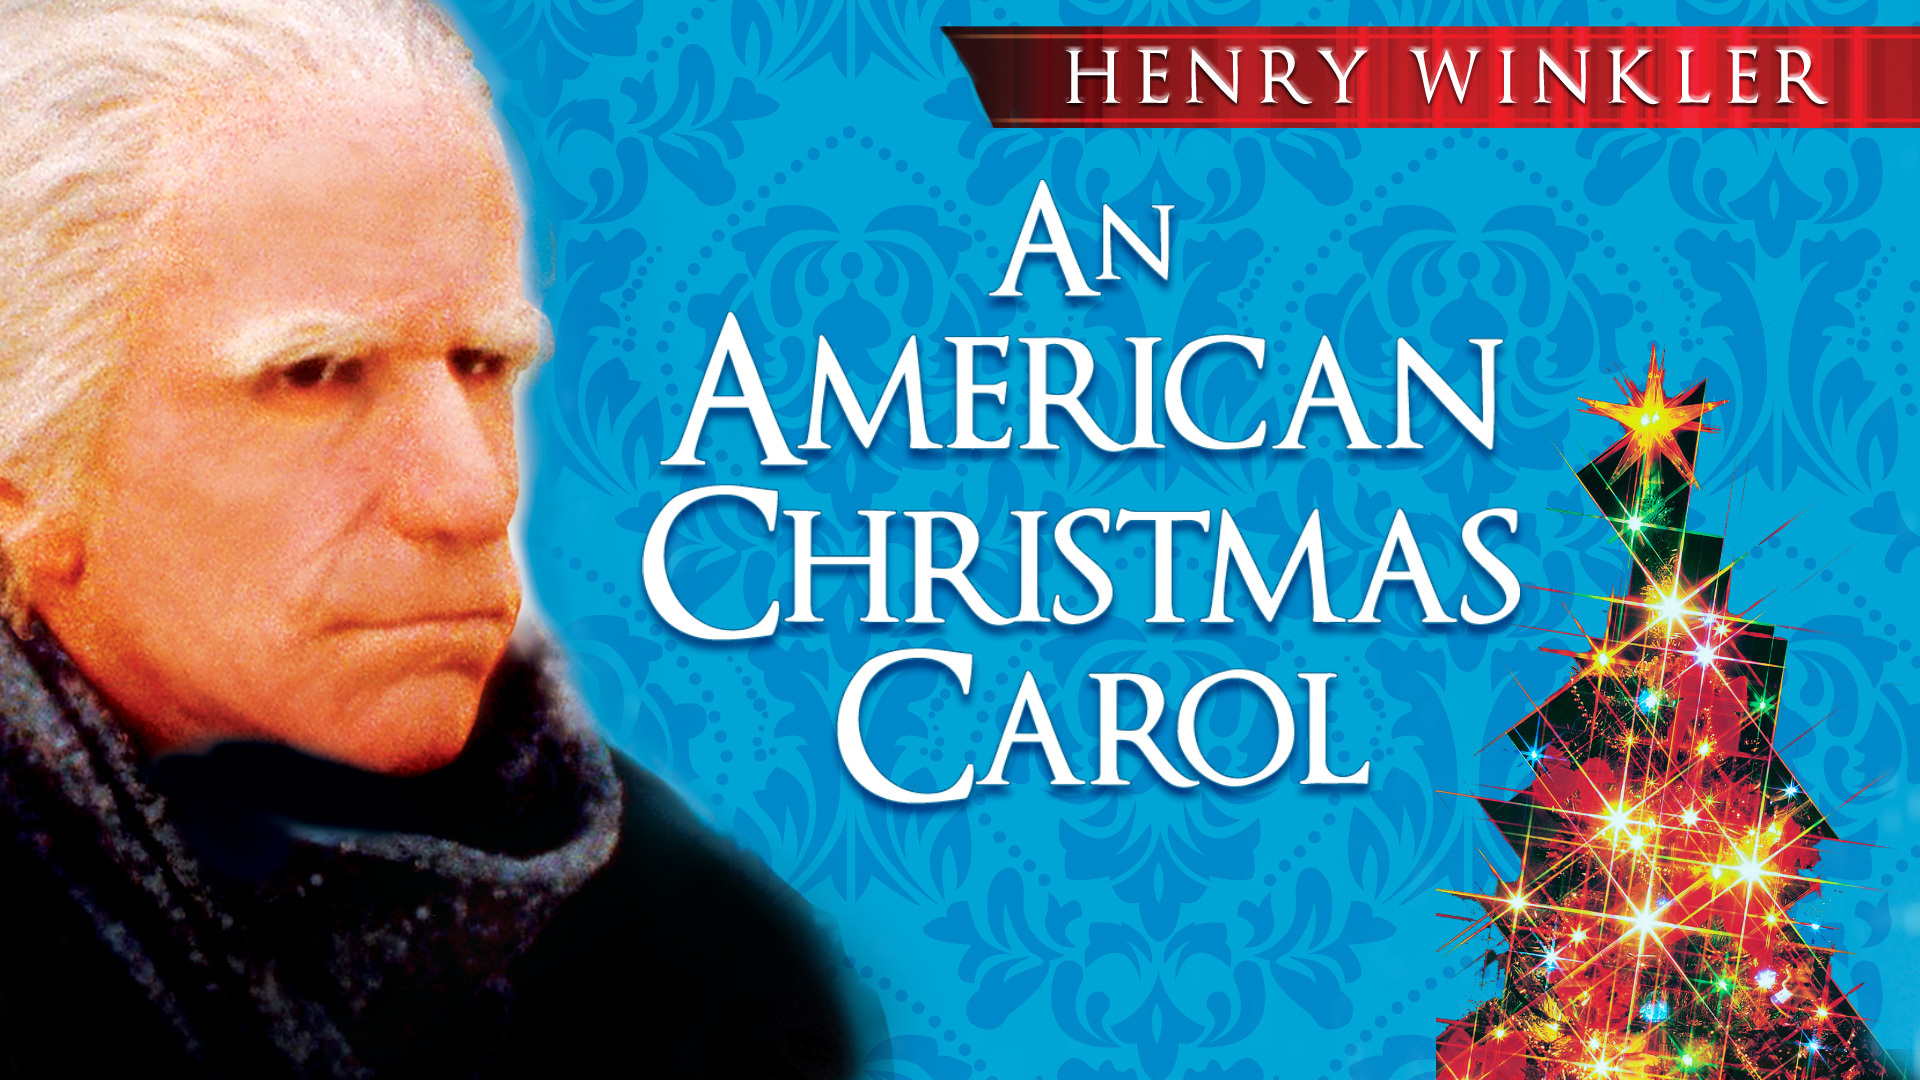 An American Christmas Carol.Shoutfactorytv Watch An American Christmas Carol